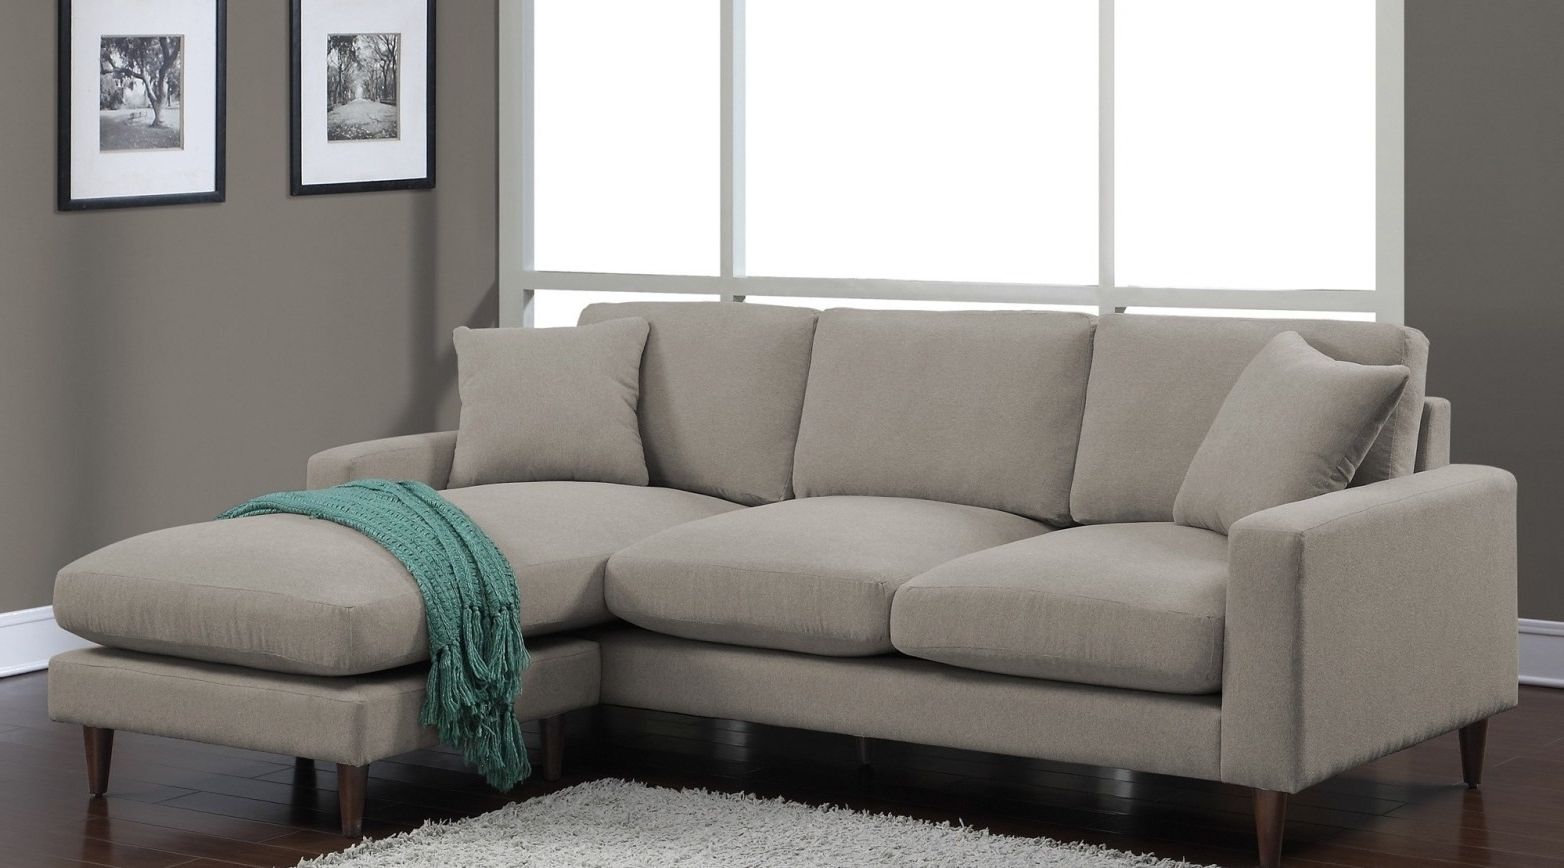 Fashionable Vancouver Sectional Sofas For Best Of Sectional Sofa Bed Vancouver Bc – Mediasupload (View 8 of 20)